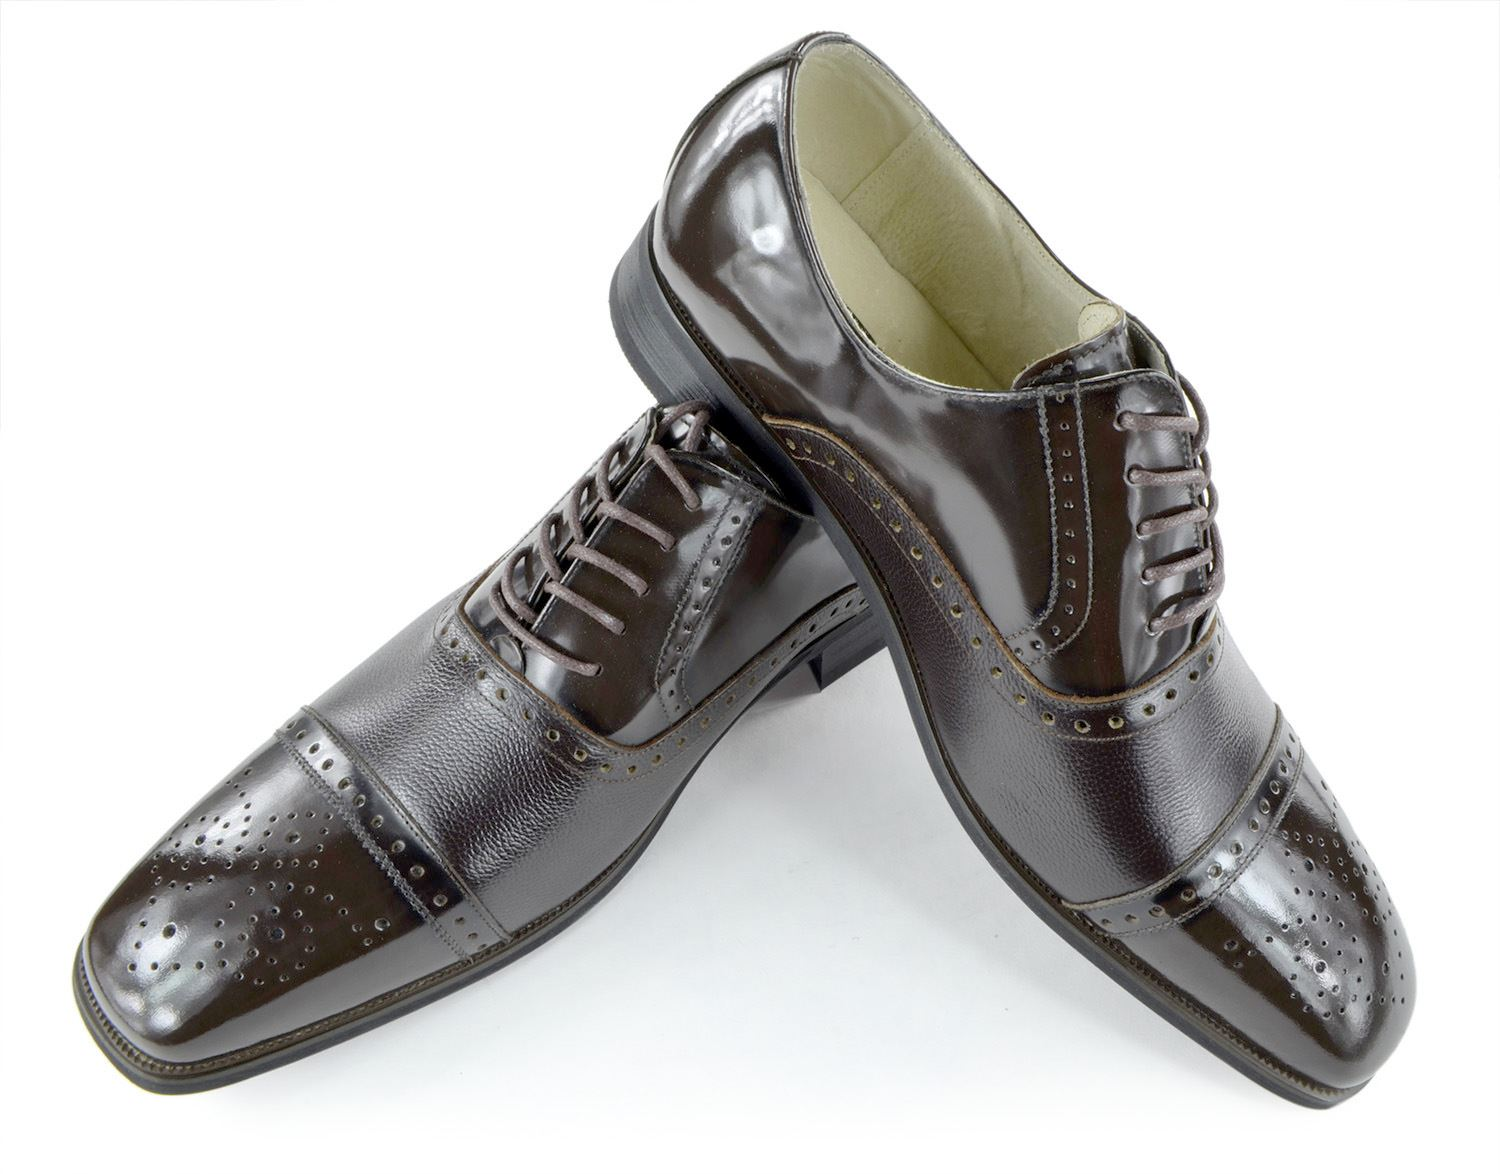 Moda Di Raza- Men's Dress Shoes Leather Shoe Business Formal Casual Parties - Charcoal